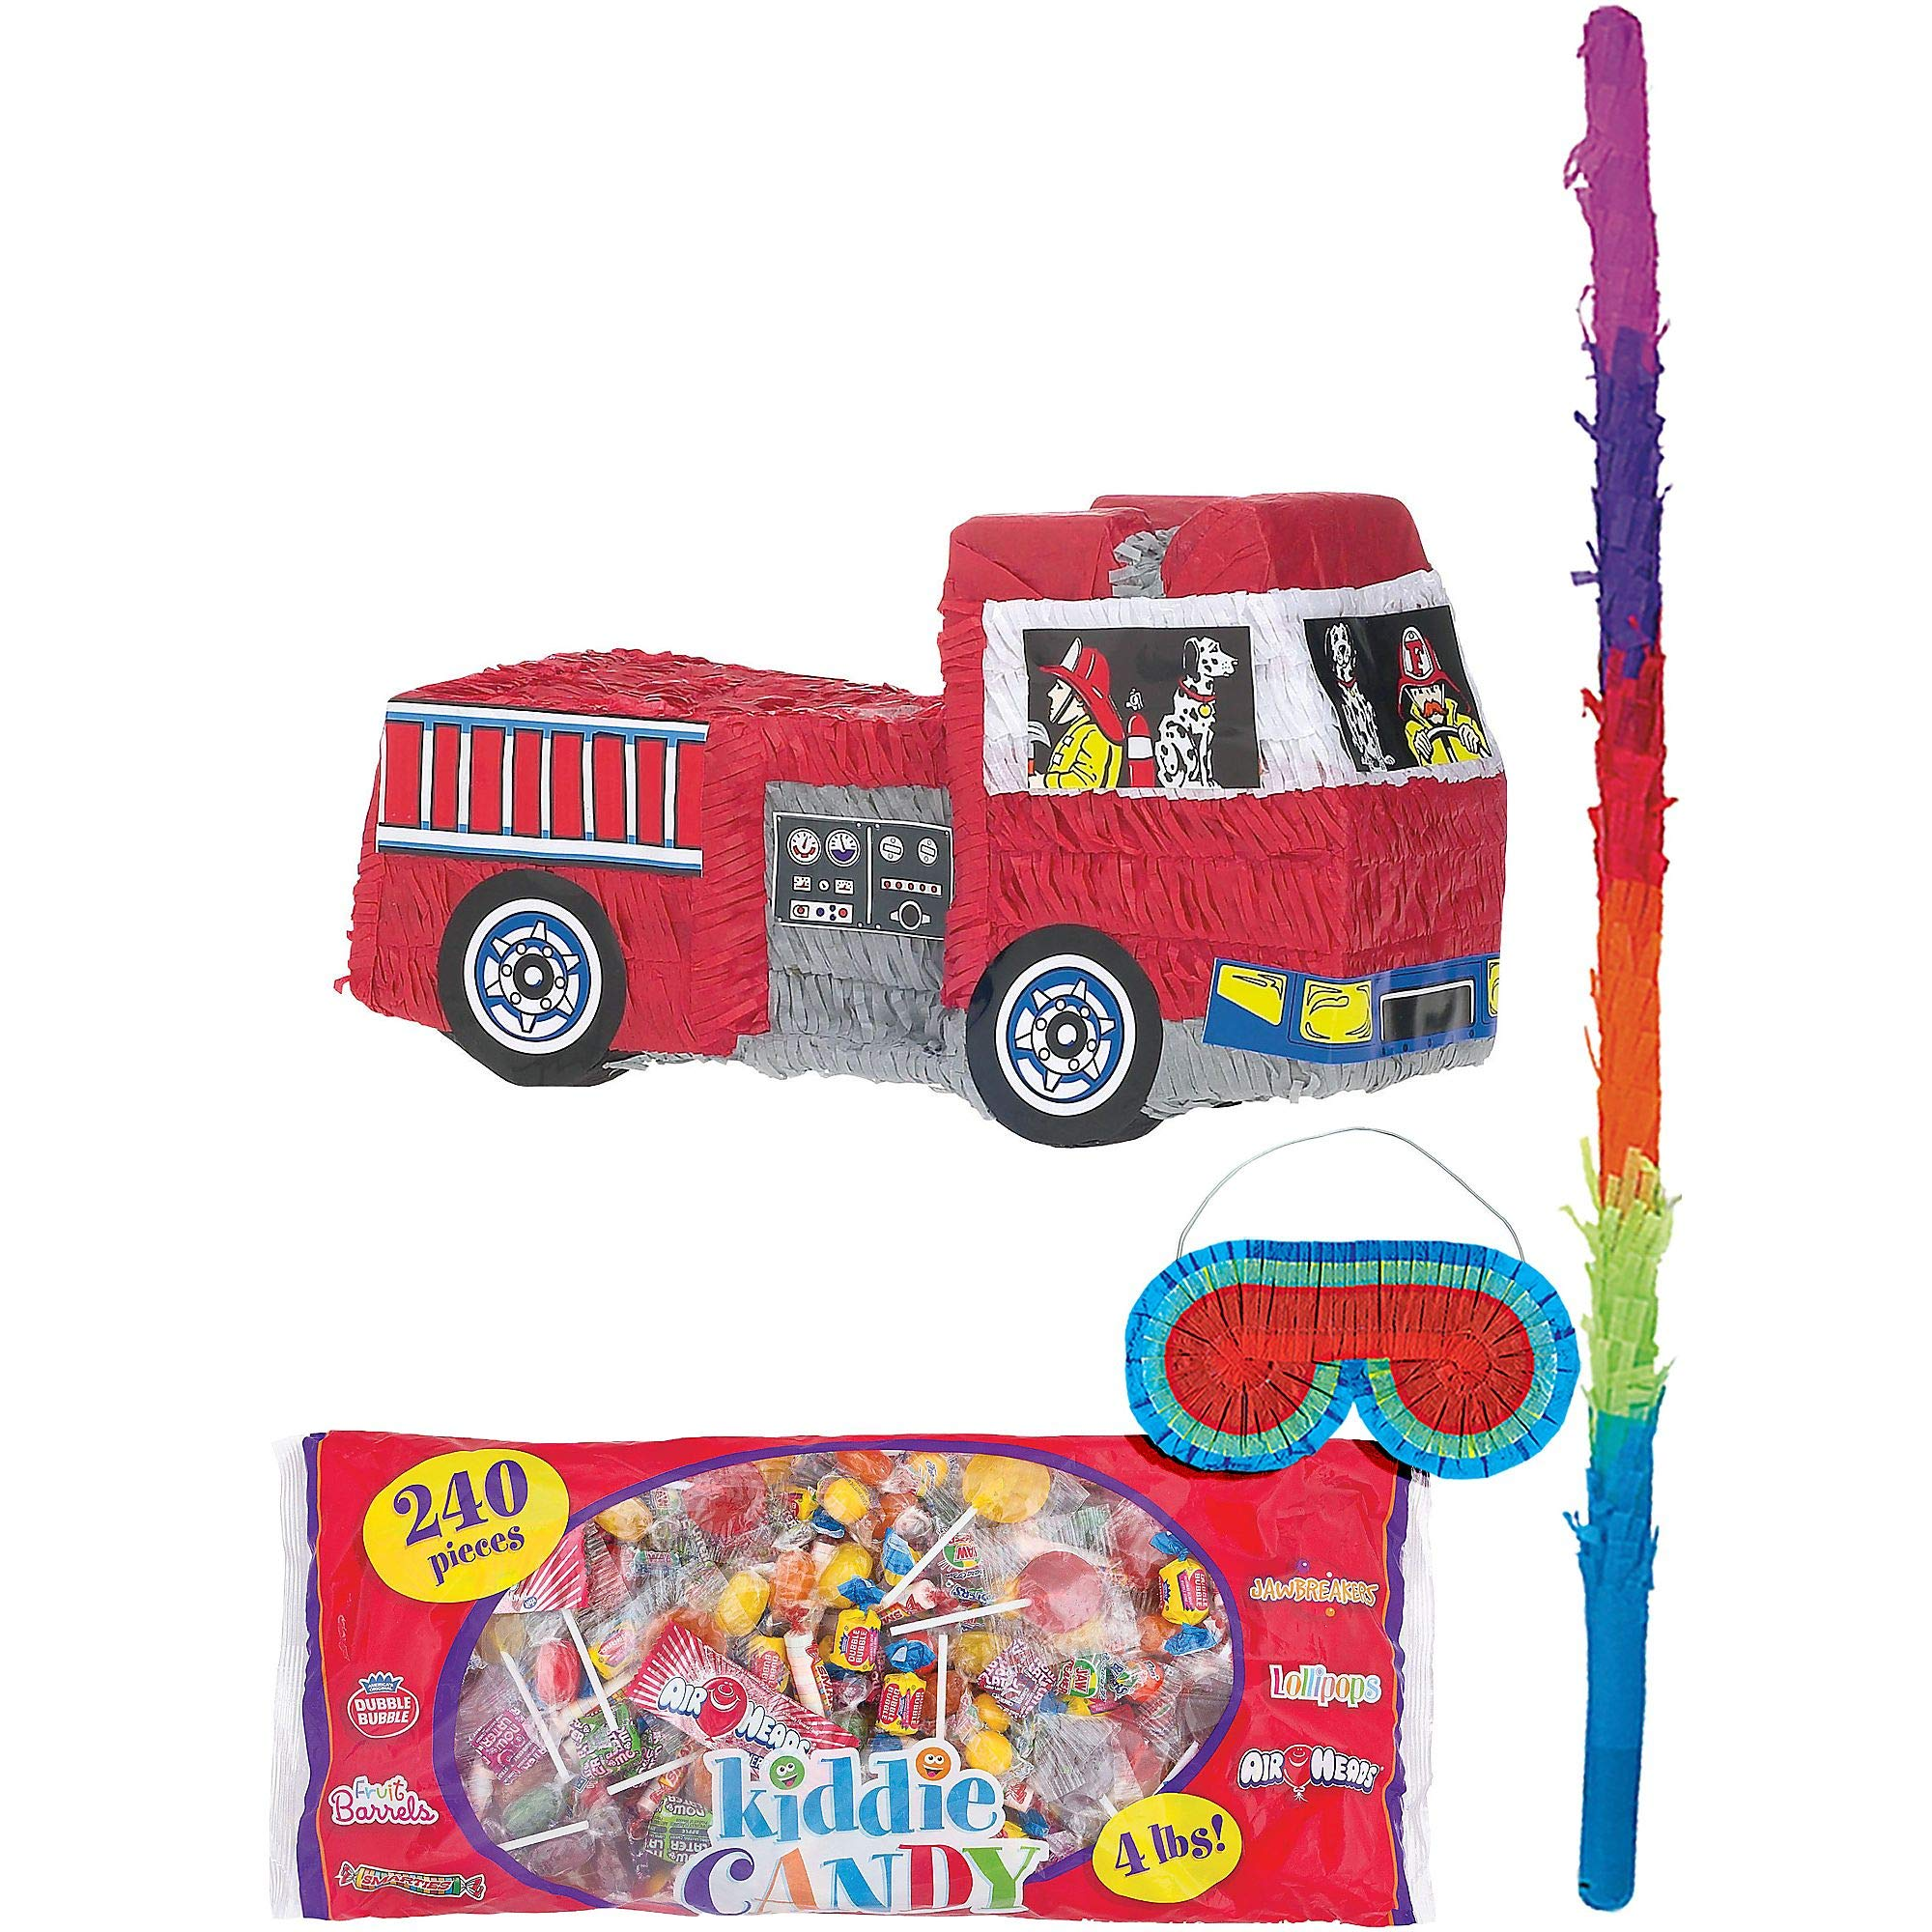 Party City Fire Engine Pinata Kit for Birthday Party, Includes Bat, Blindfold and Kiddie Candy Mix (4lb bag)